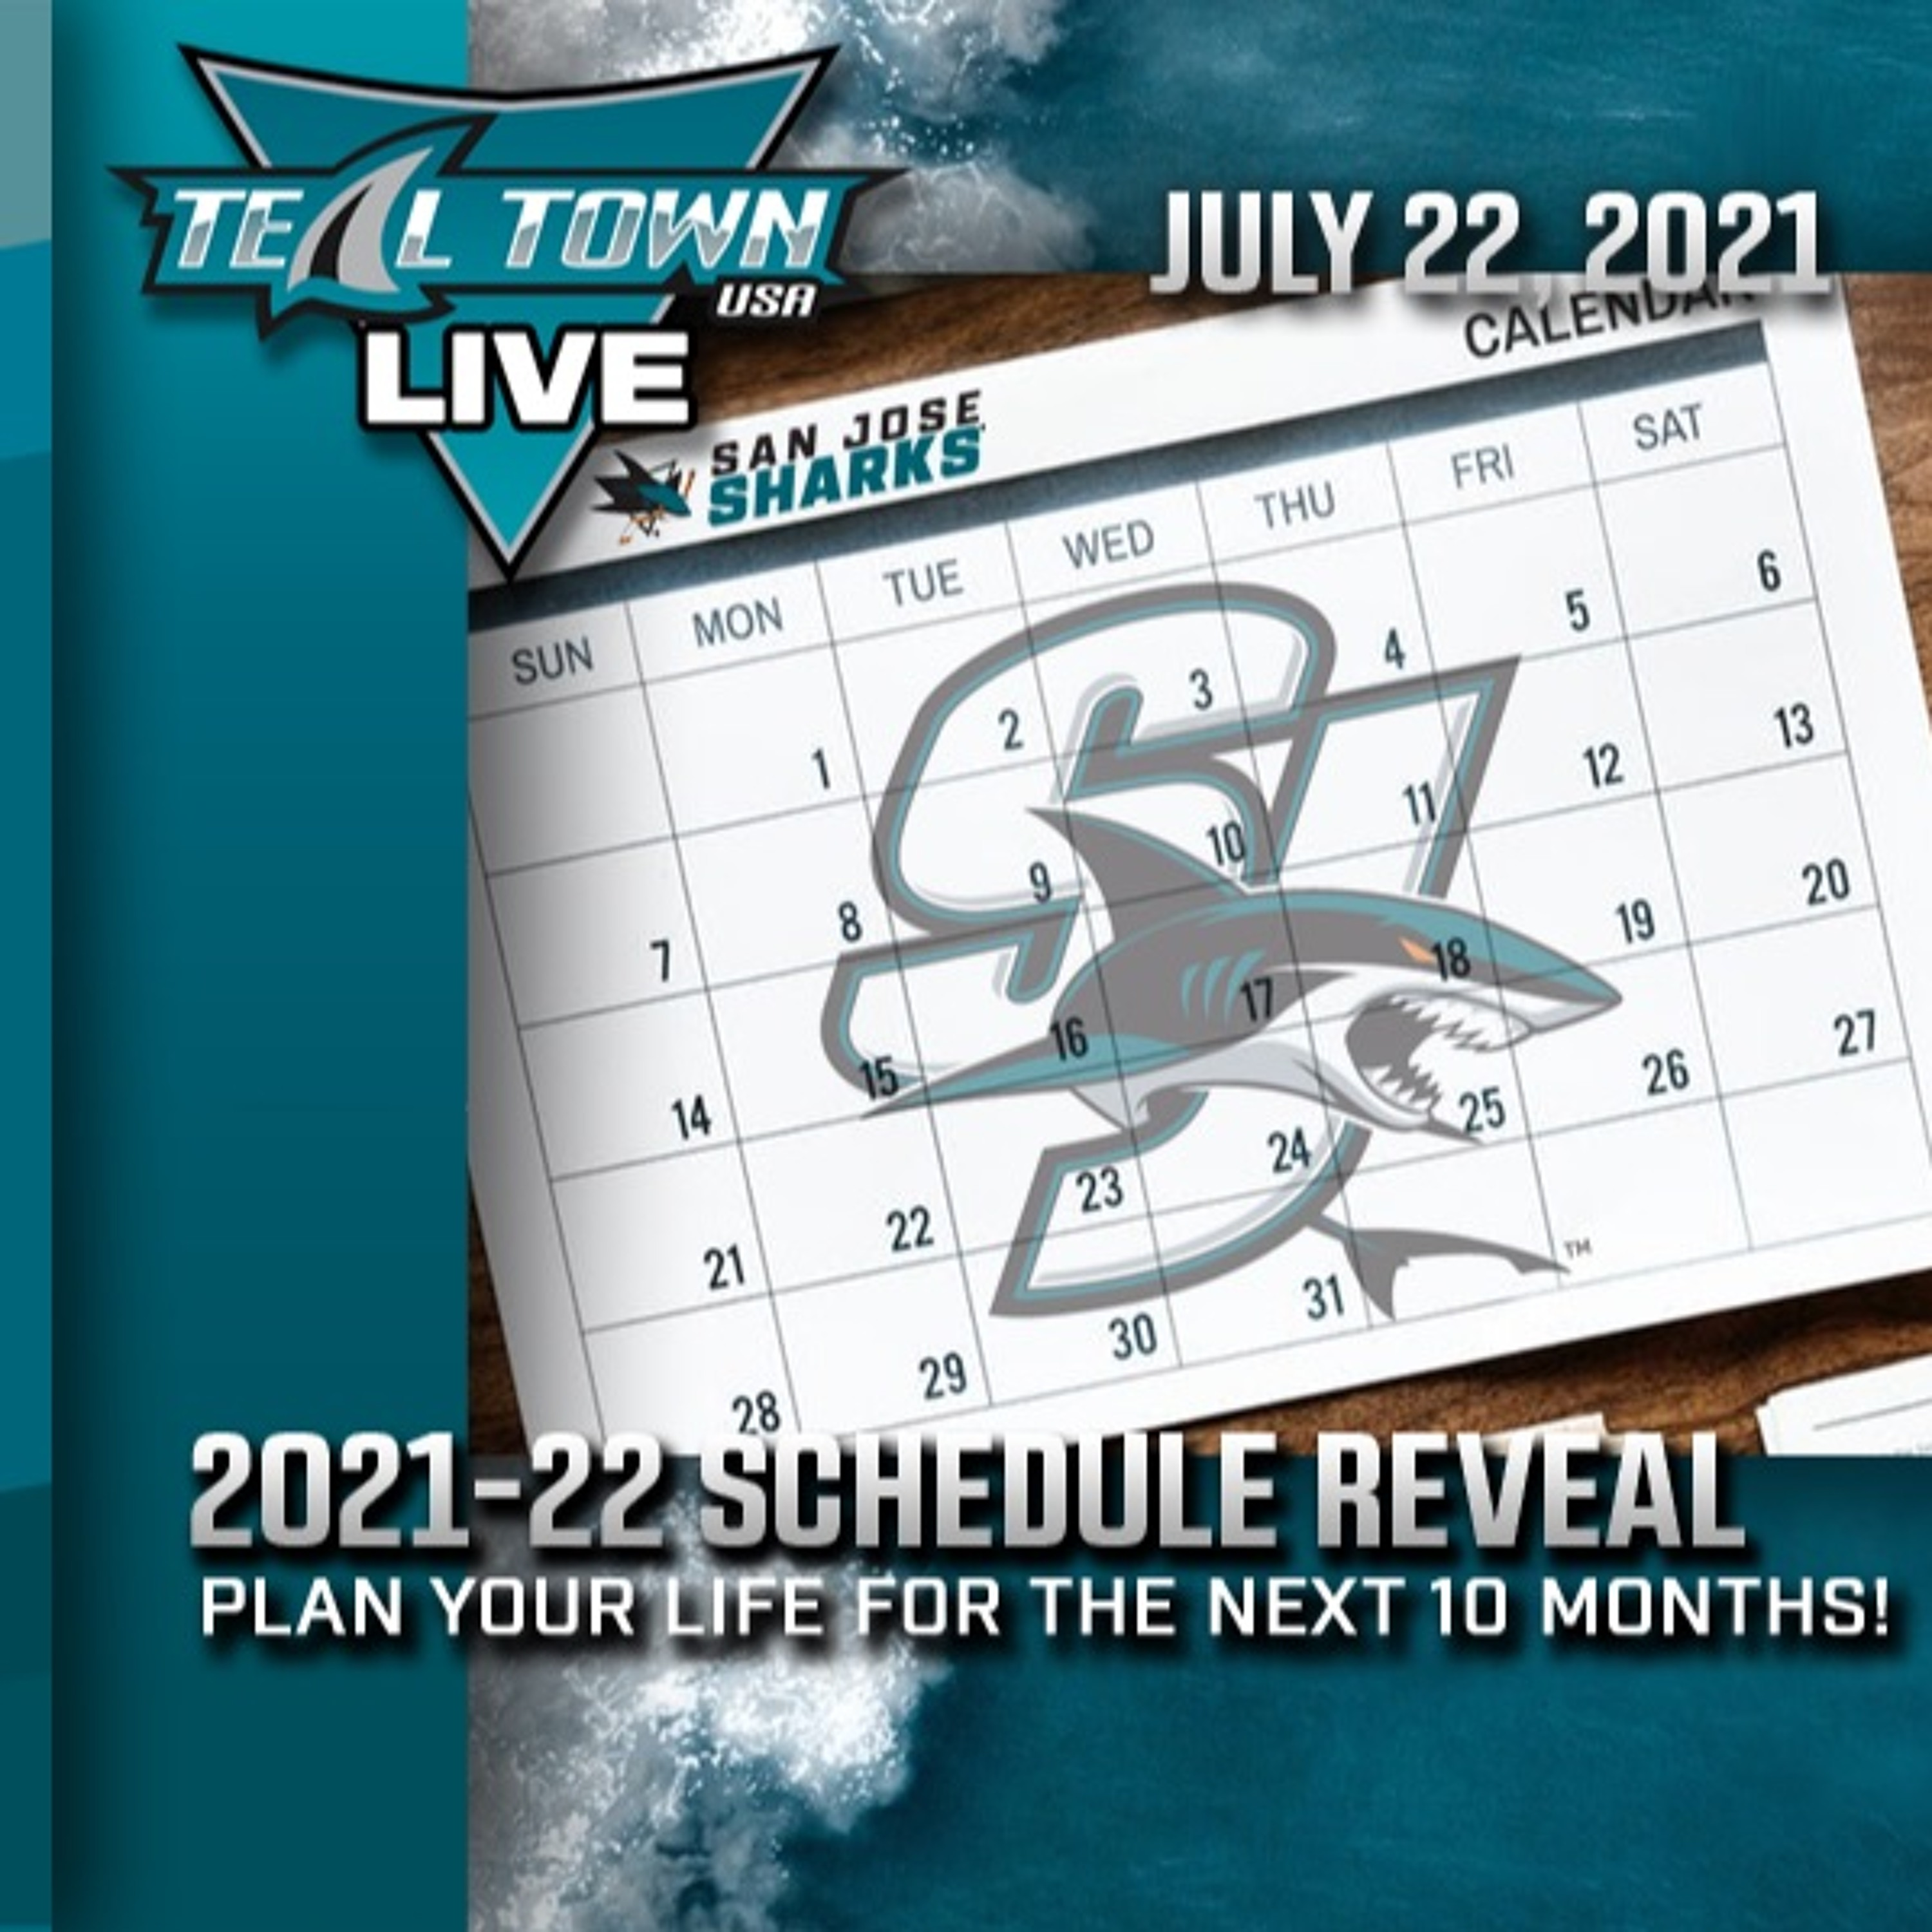 2021-22 NHL & Sharks Schedule Reveal - 7-22-2021 - Teal Town USA Live